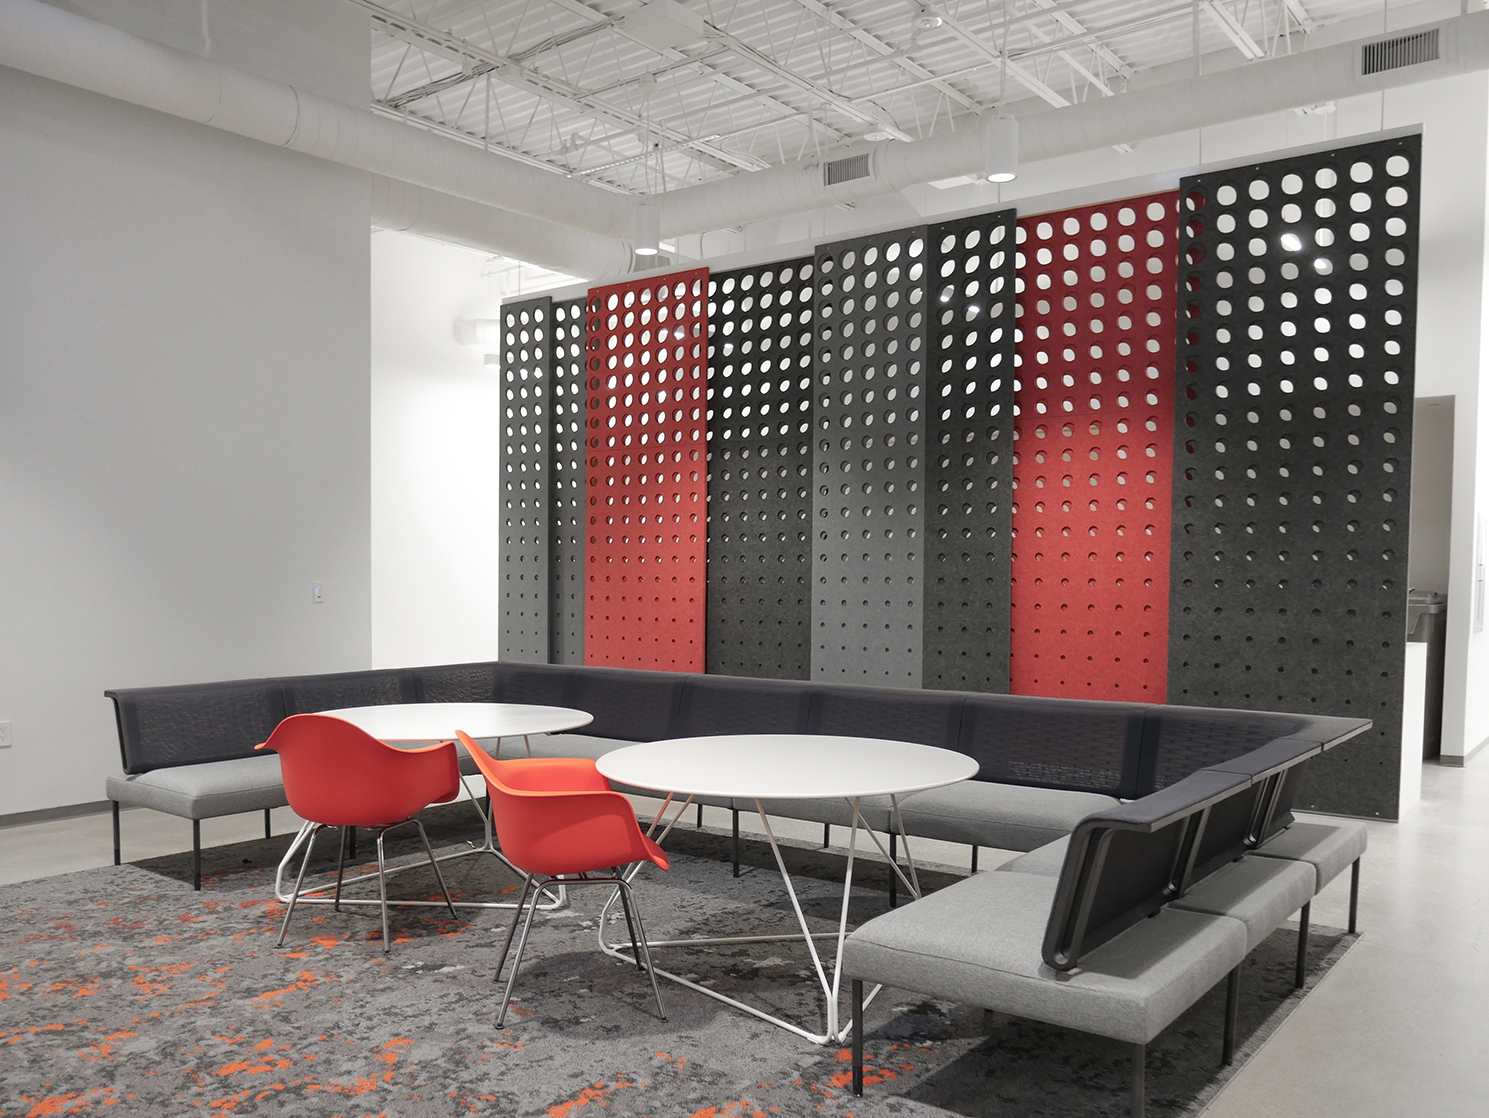 A work lounge can be somewhat distracting but with PANL, Fräsch's acoustical laser-cut divider screens you can have an office lounge or open work space without any disruption.